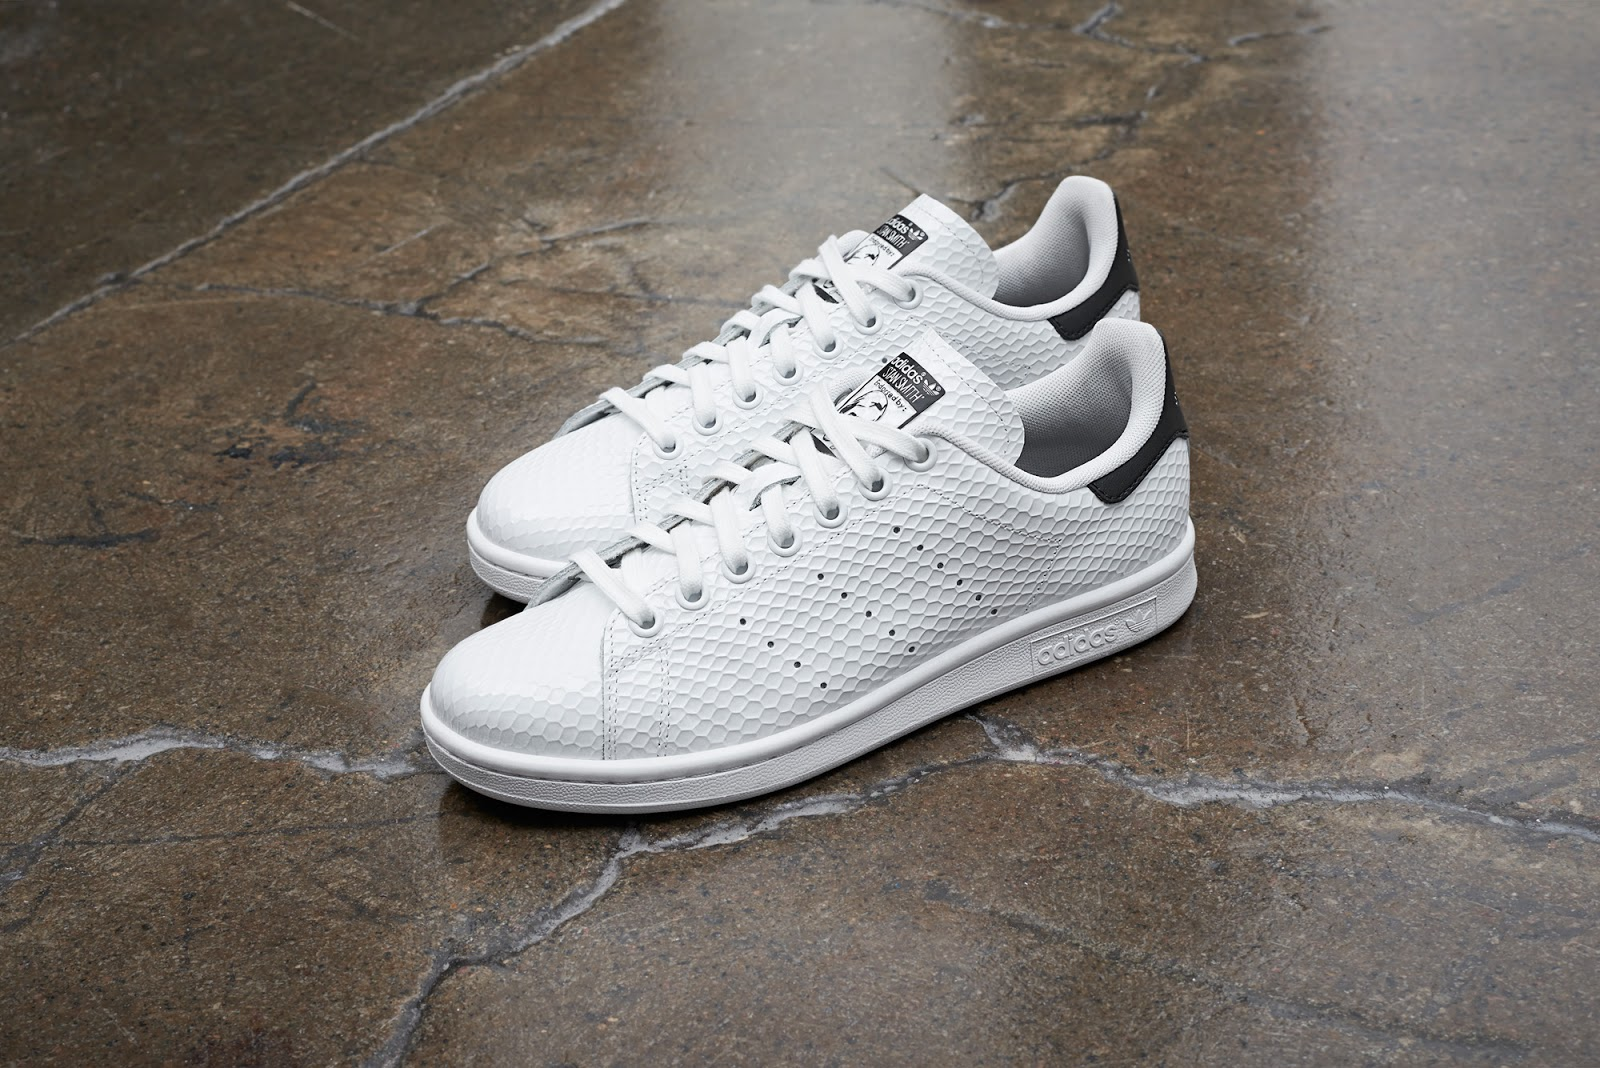 best sneakers 49997 a77bd Offered in the original white green colourway and a complementary  white black edition, it s a slick iteration of the casual classic with a  tasteful feminine ...